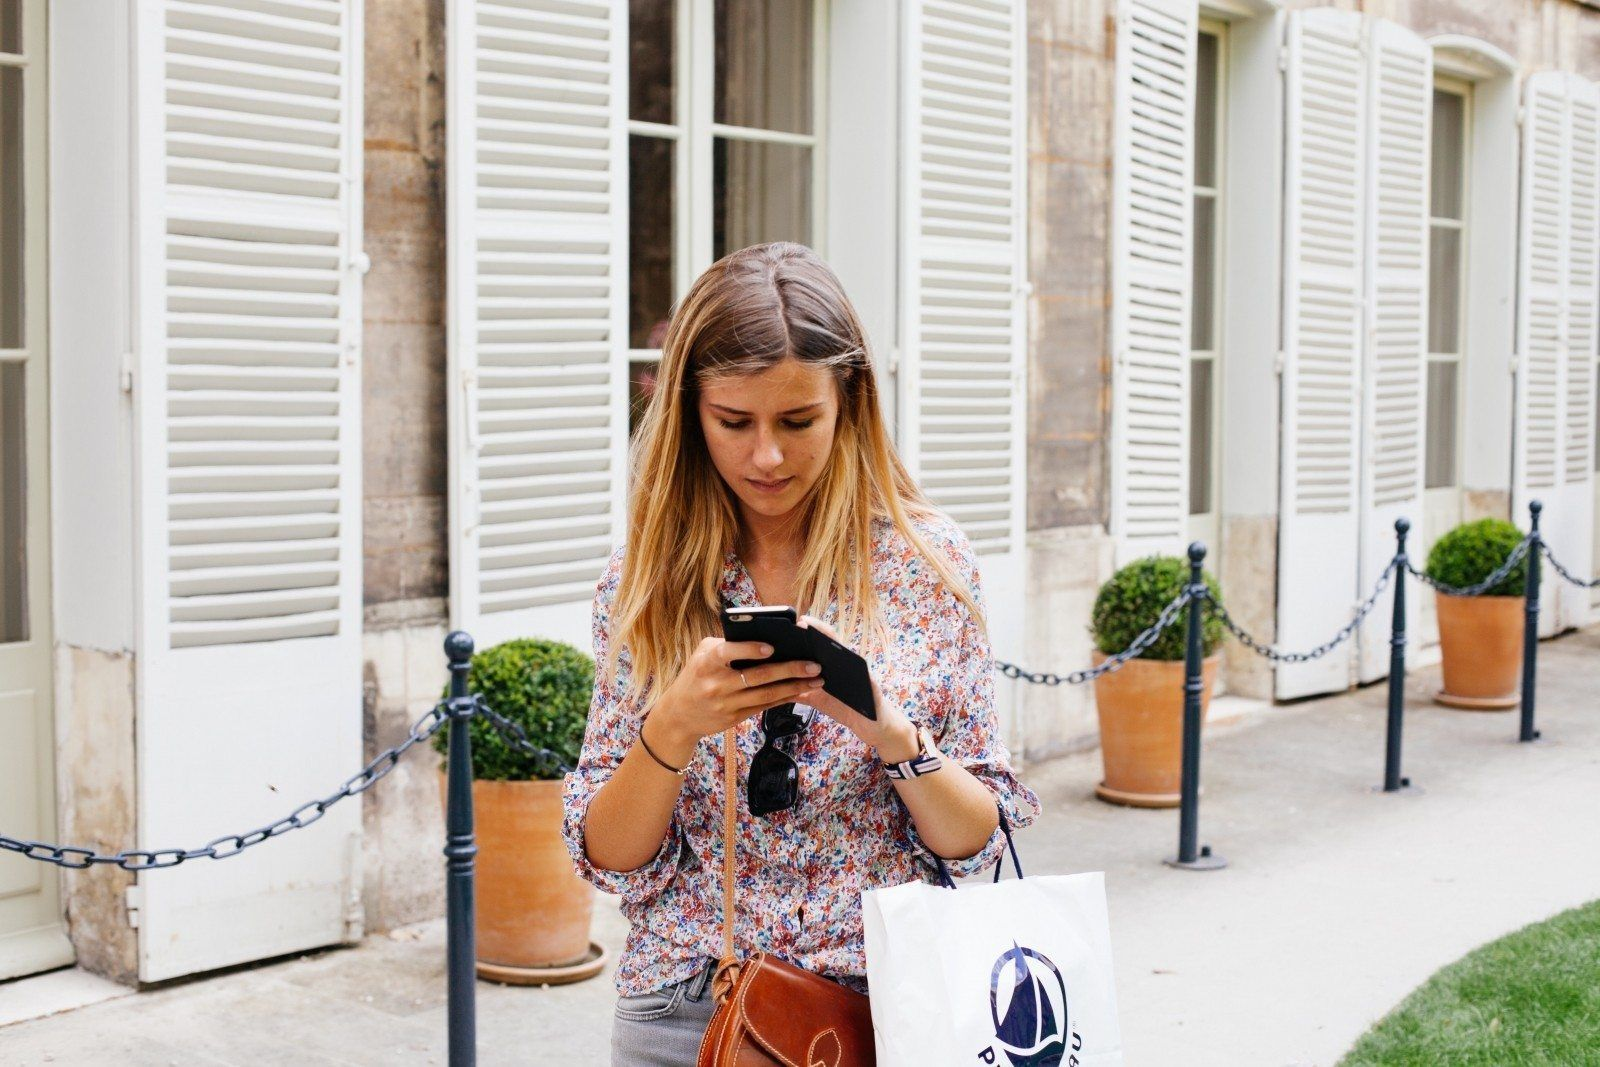 Our Guide to Smart Phone Etiquette